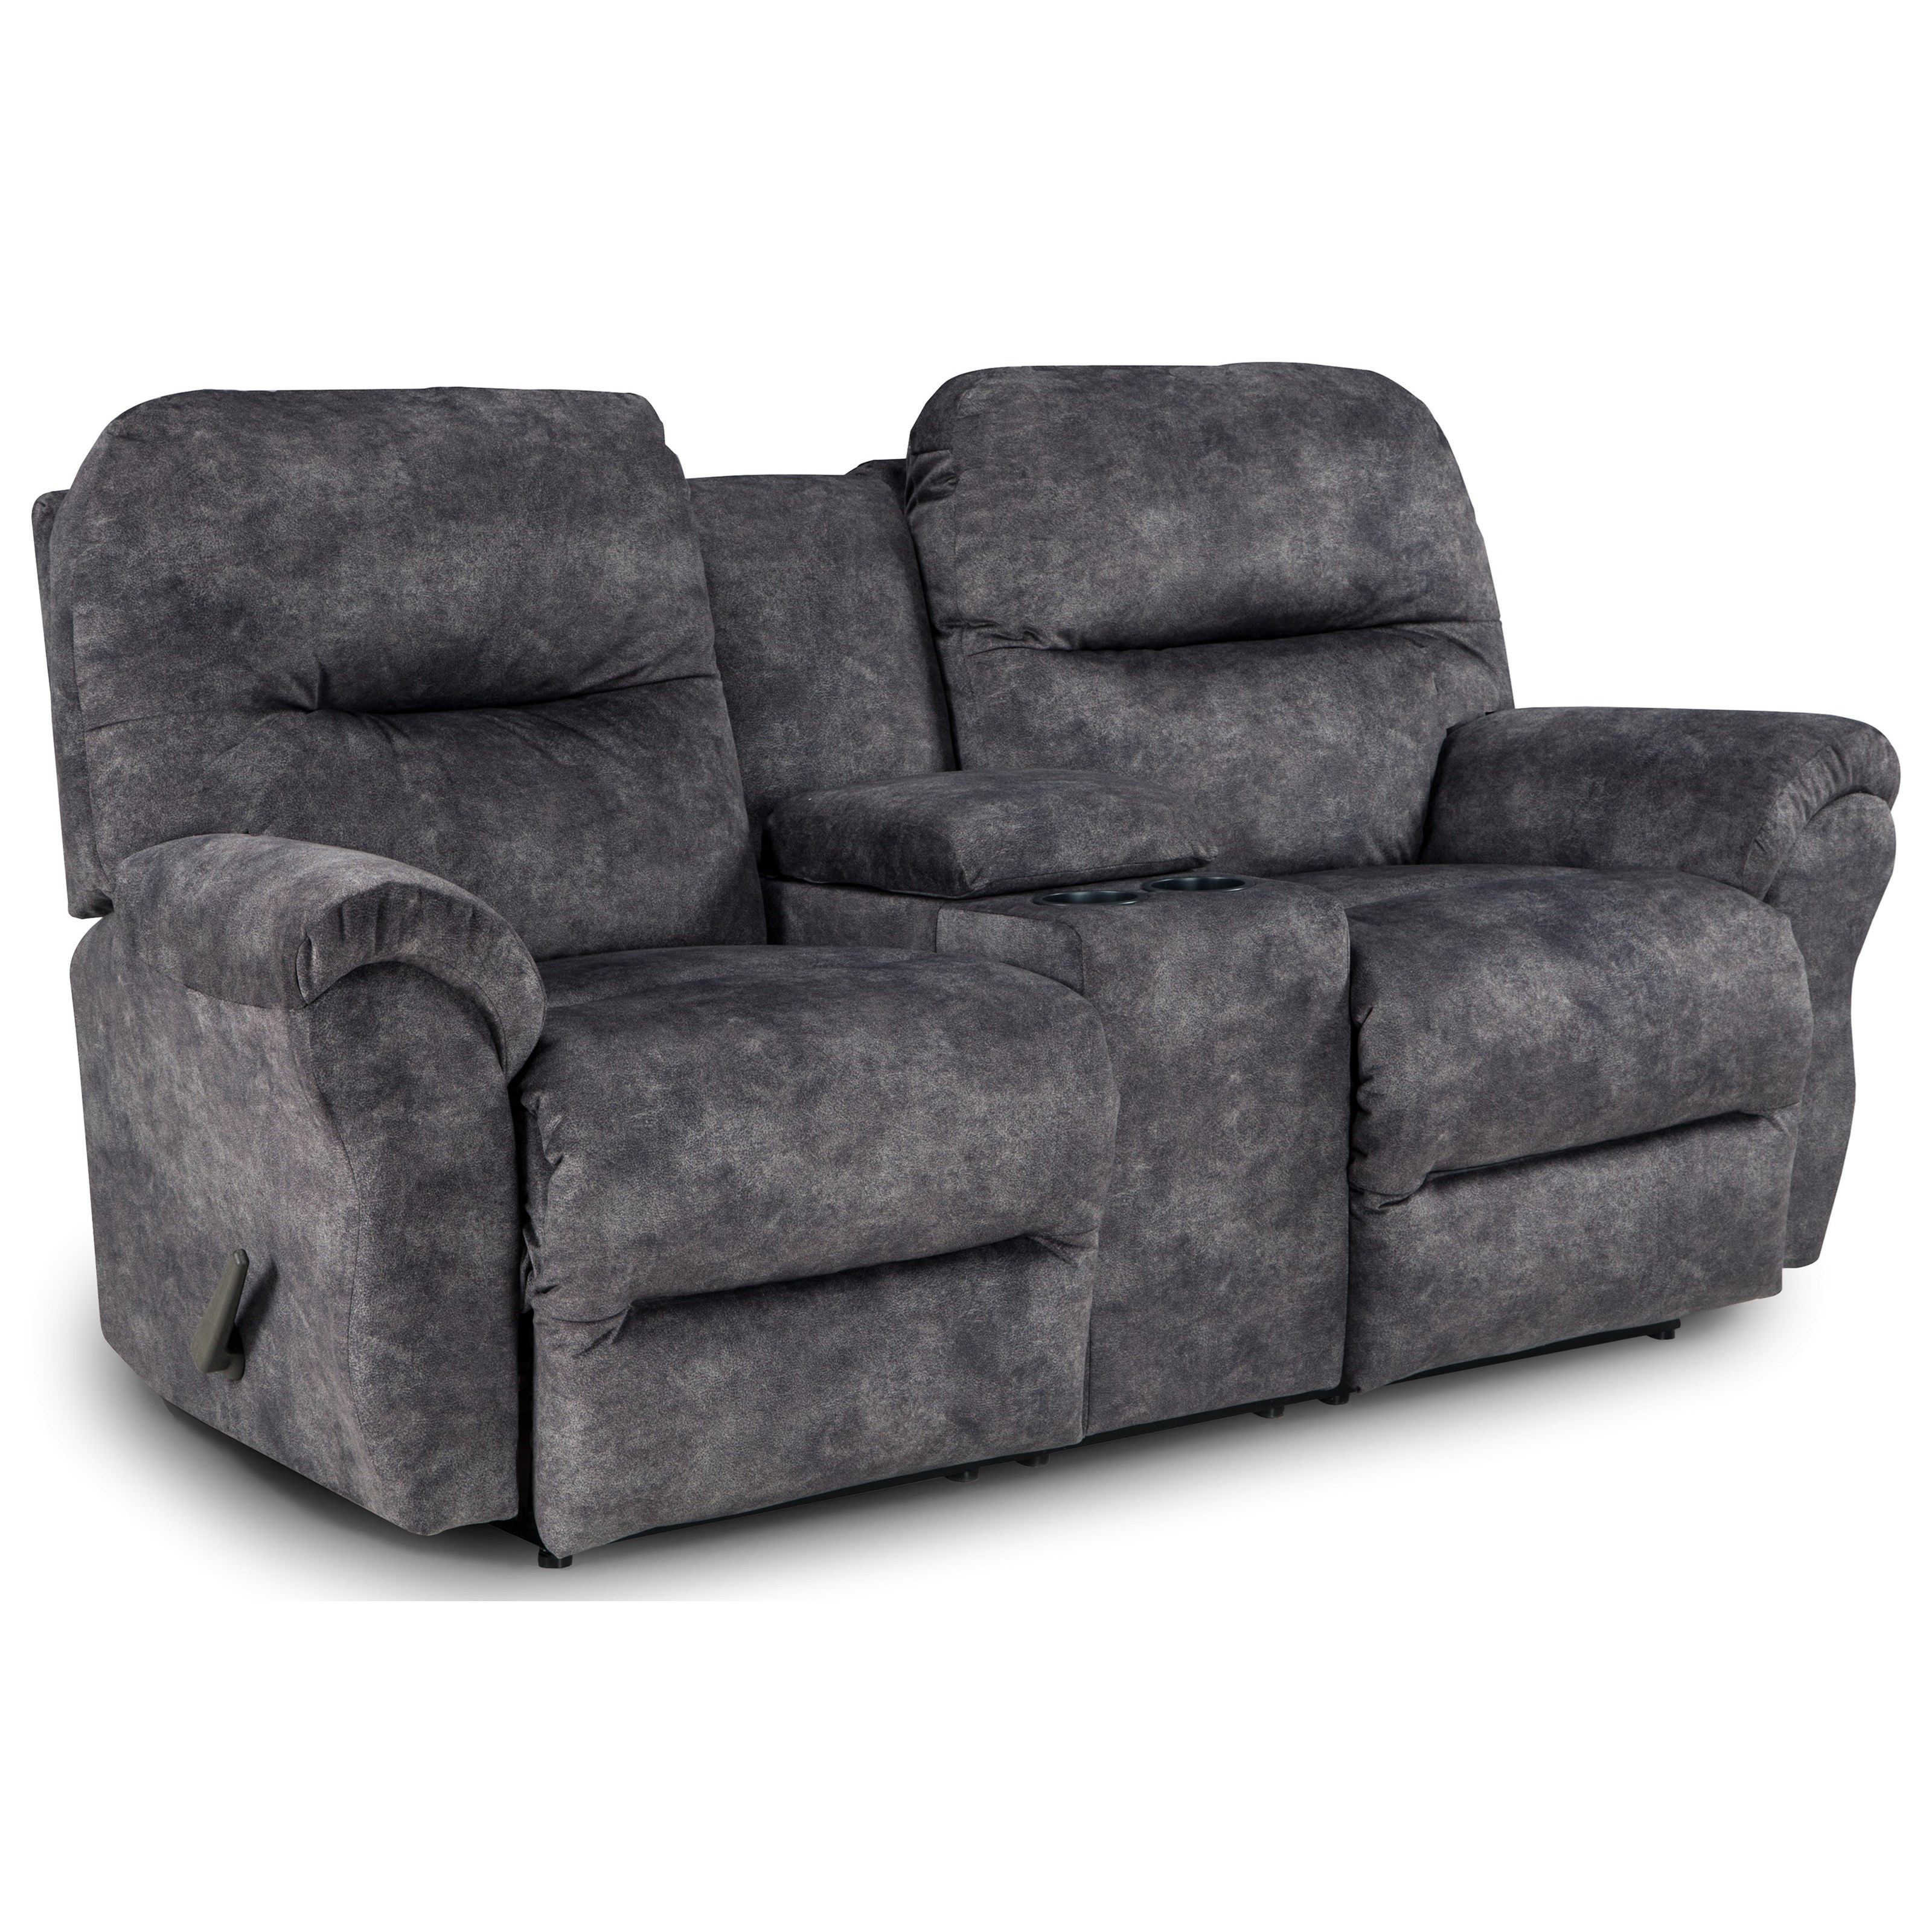 Bodie Space Saver Reclining Loveseat by Best Home Furnishings at Best Home Furnishings